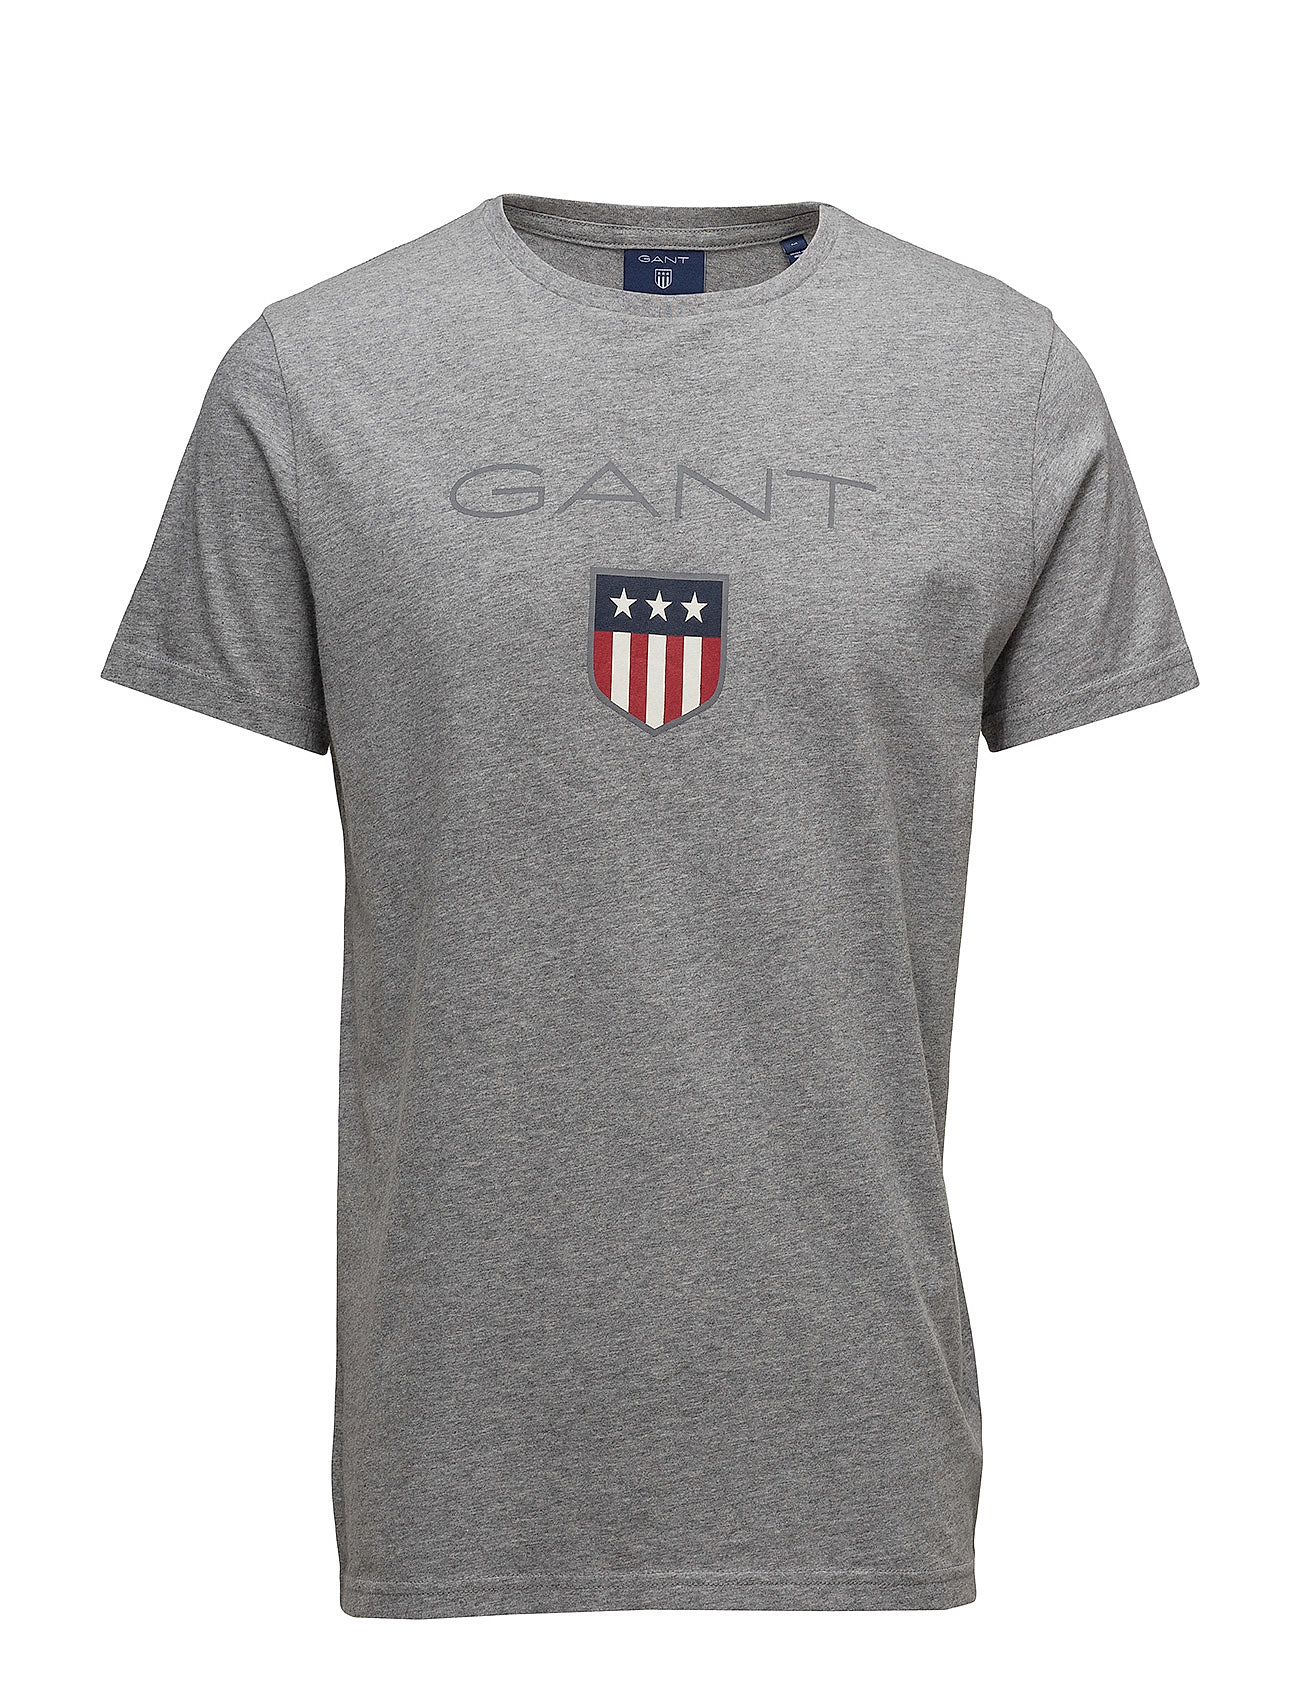 Gant SHIELD SS T-SHIRT - GREY MELANGE